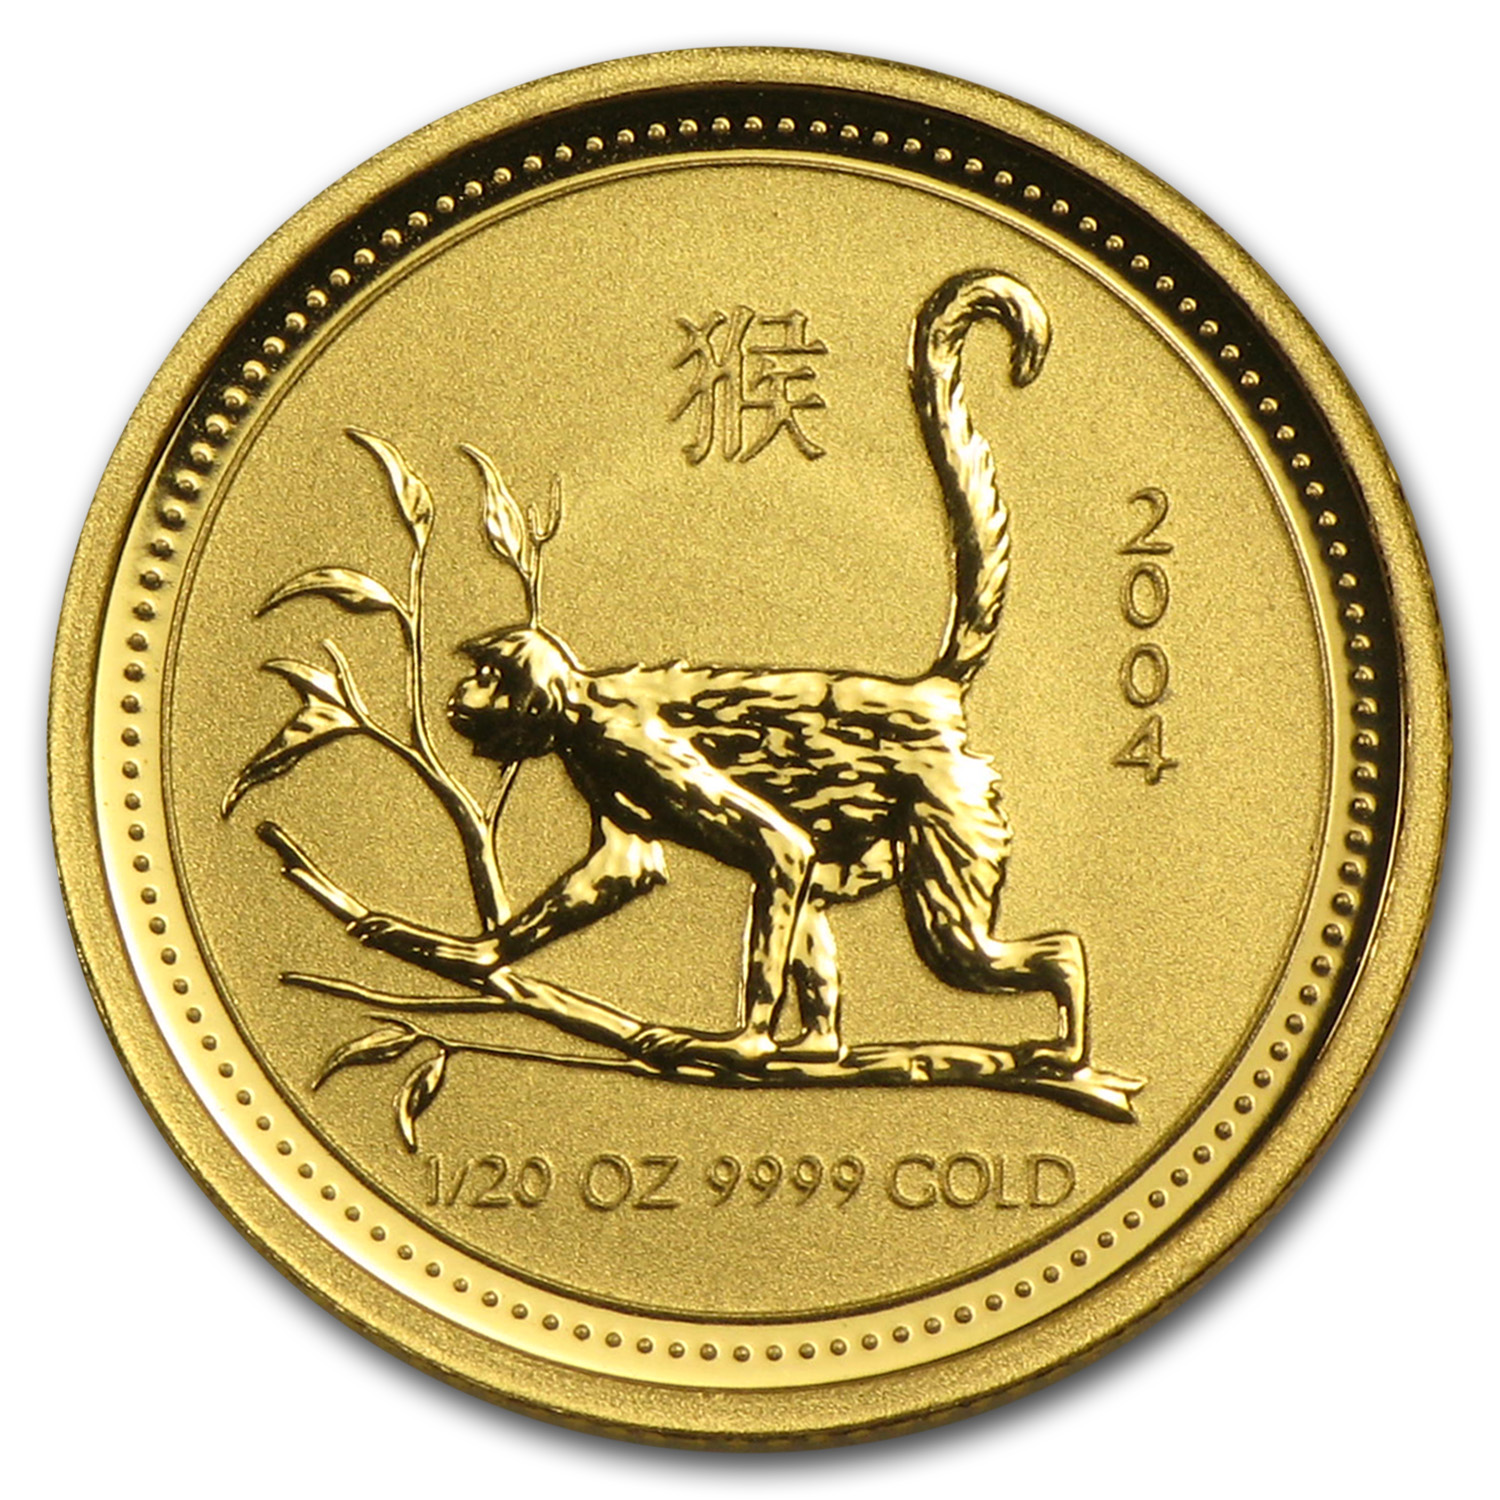 2004 1/20 oz Gold Year of the Monkey Lunar Coin (Series I)